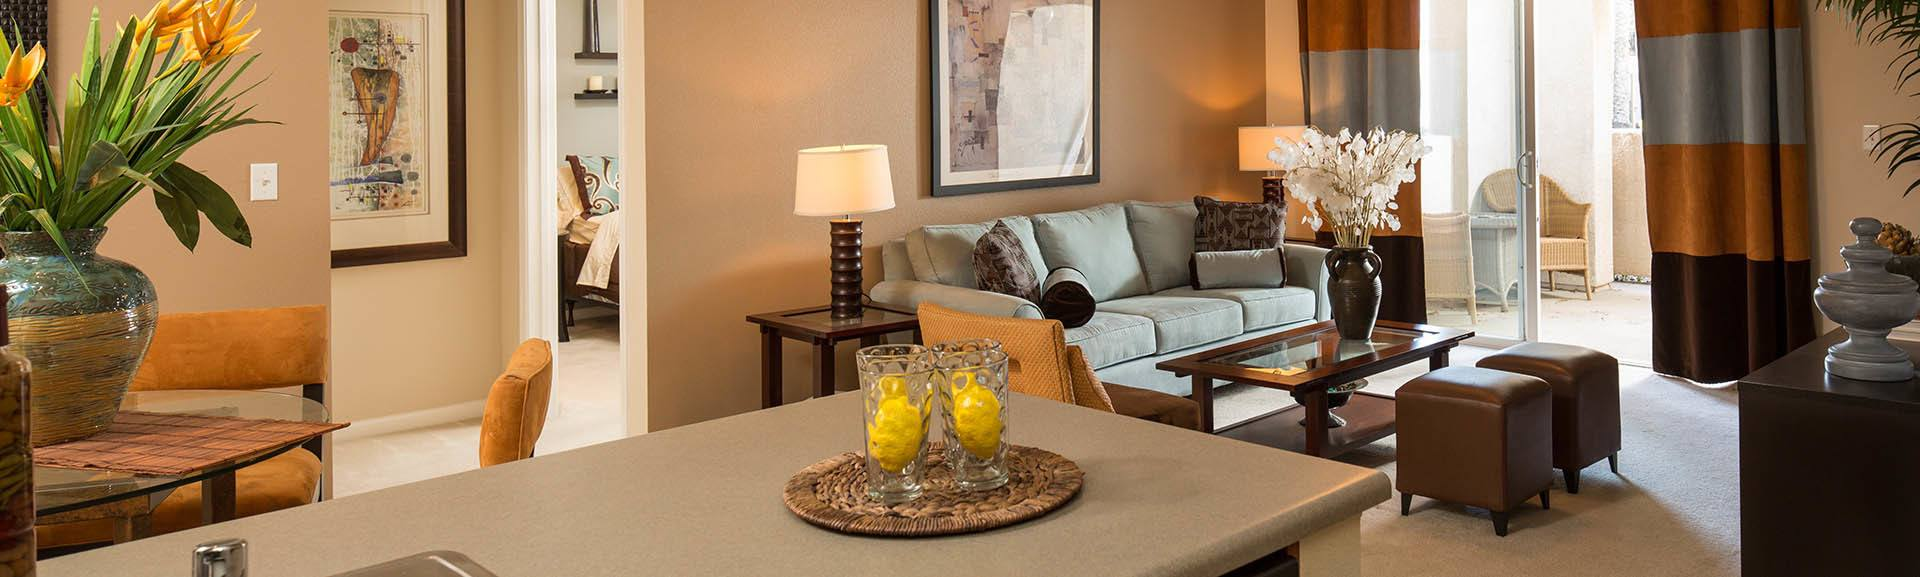 View our floor plans at Esplanade Apartment Homes on our website